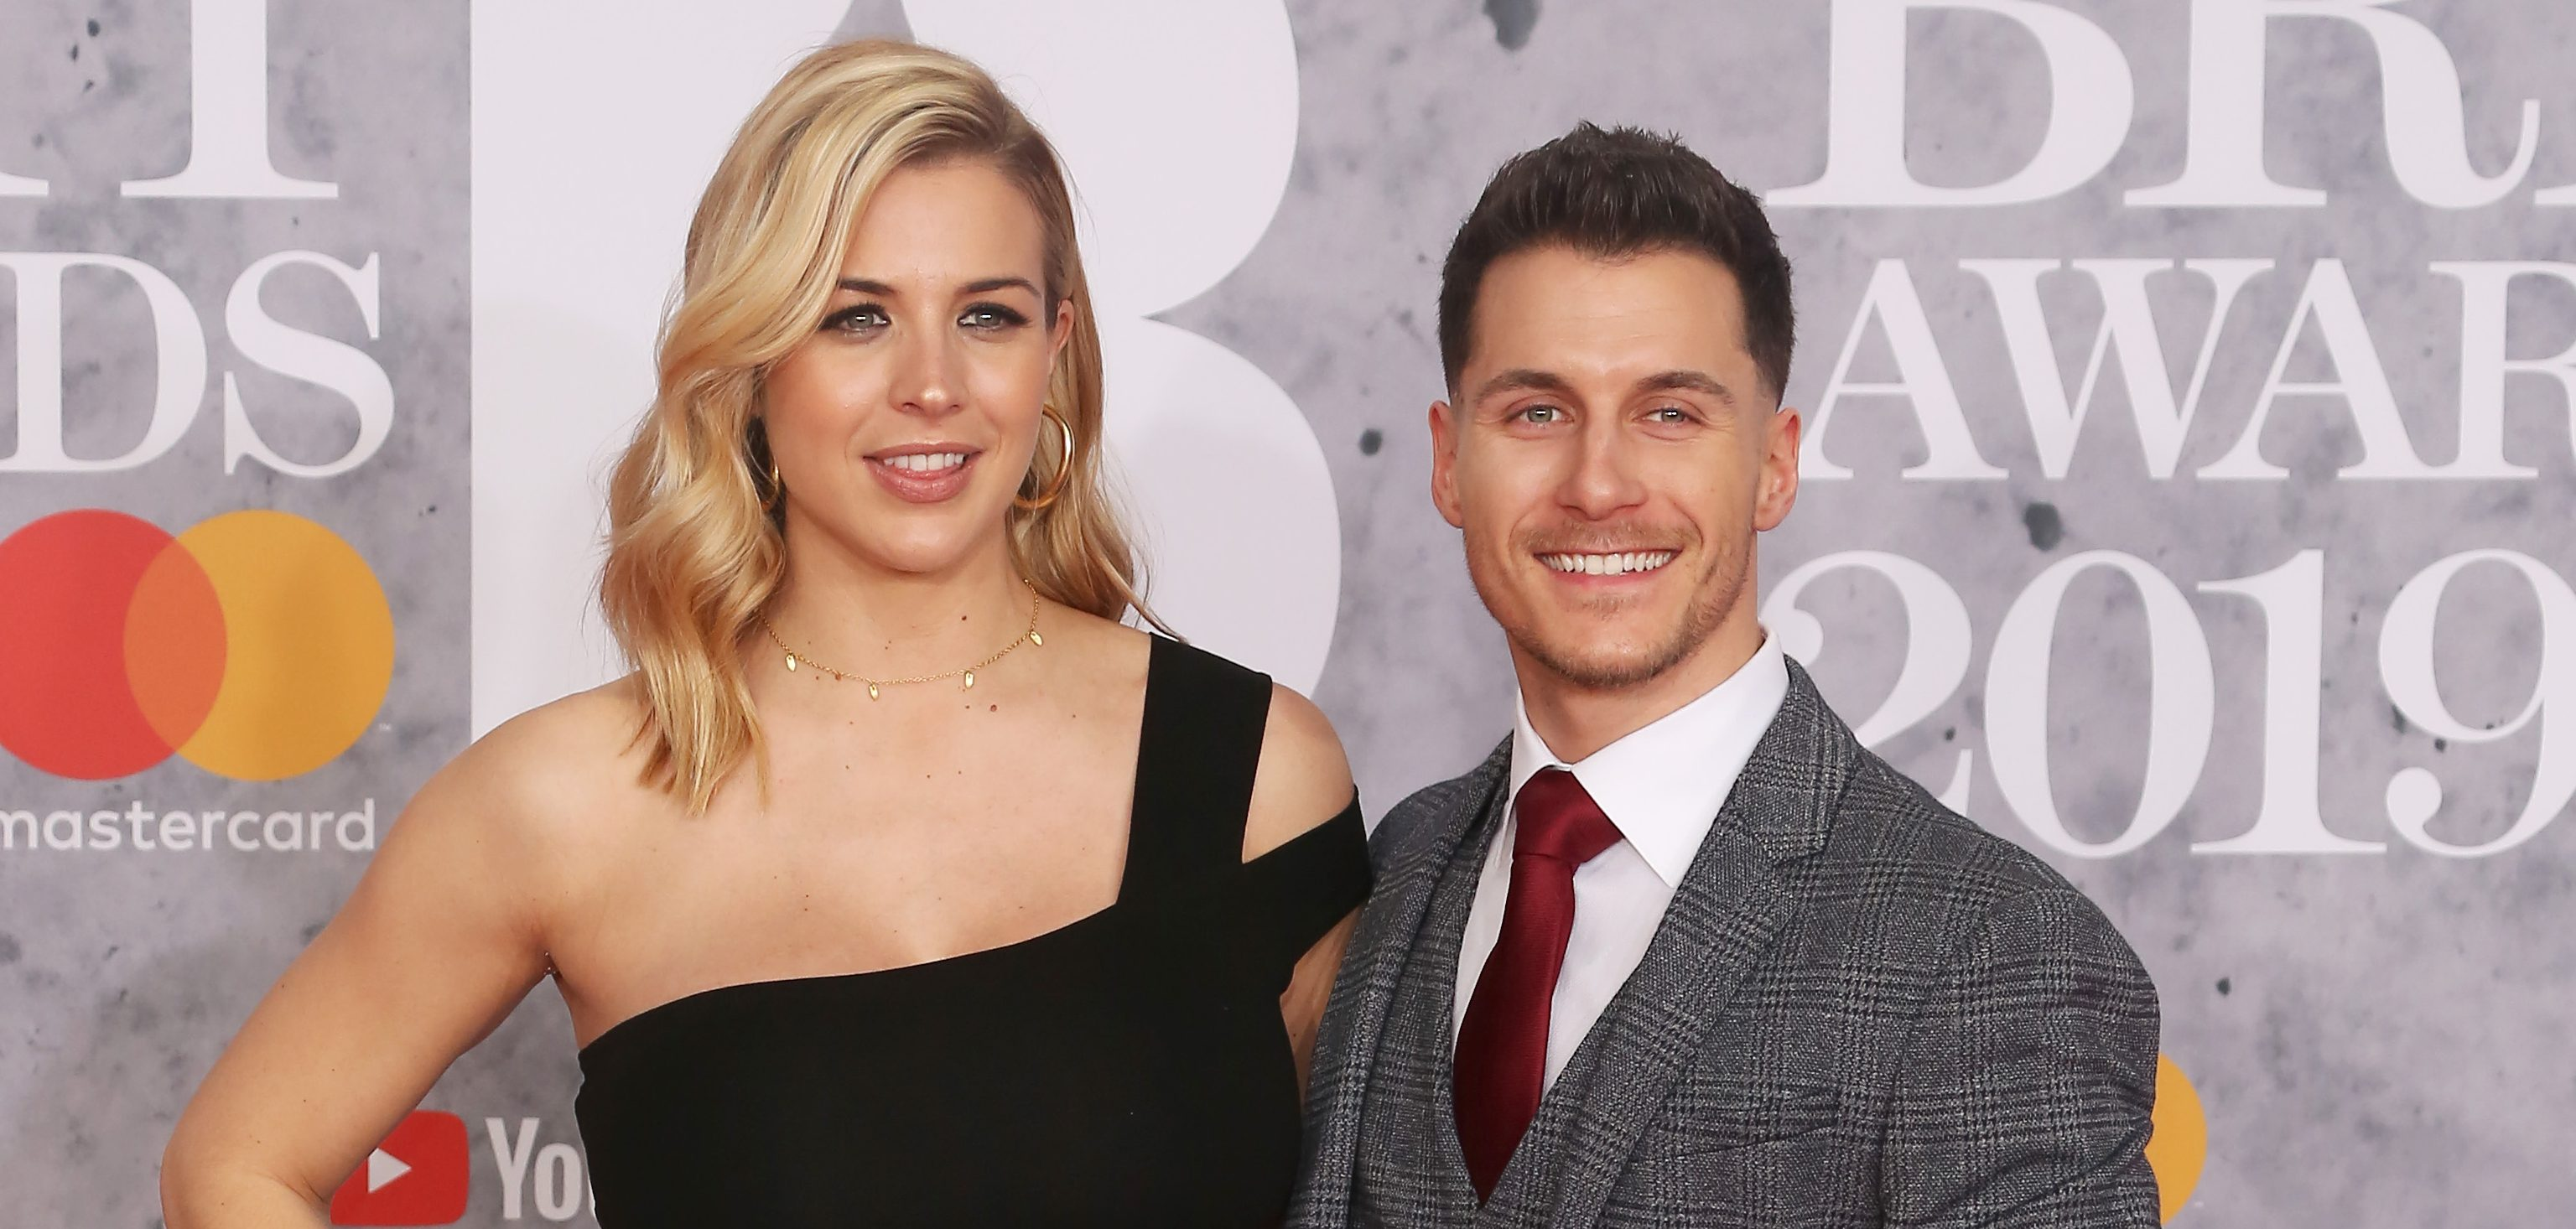 Strictly Christmas special: Gemma Atkinson and Gorka Marquez dancing together